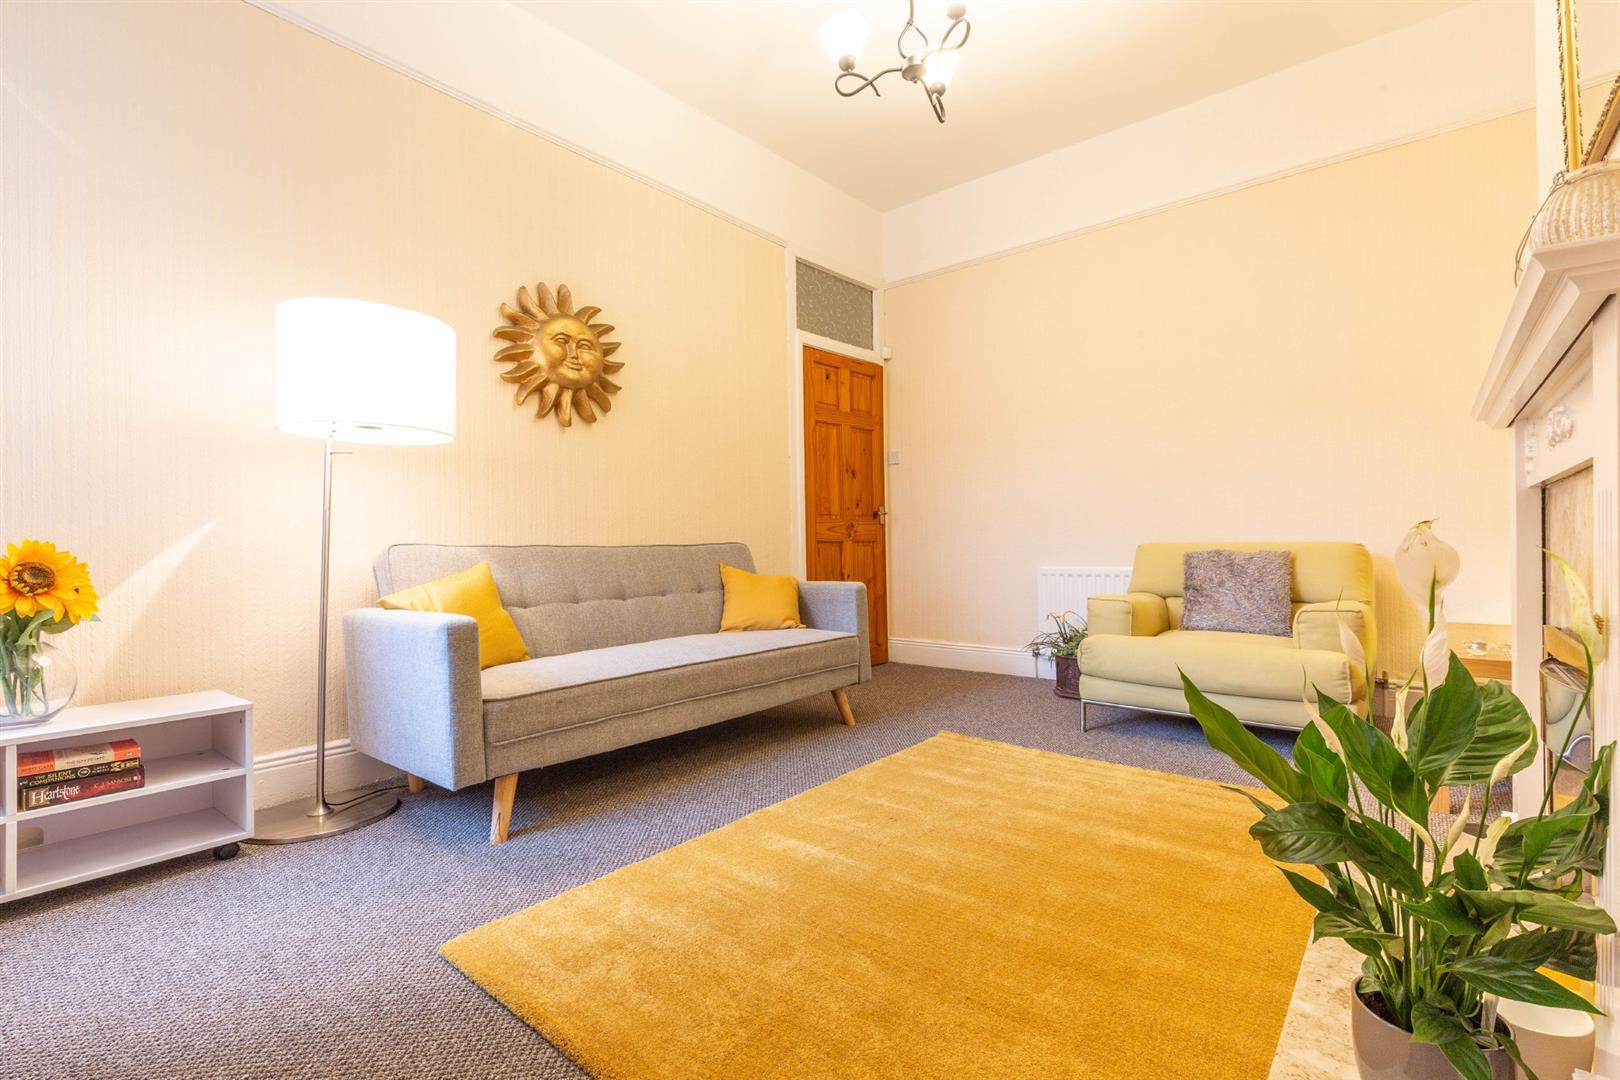 2 bed flat to rent in Newcastle Upon Tyne, NE6 5SN 0